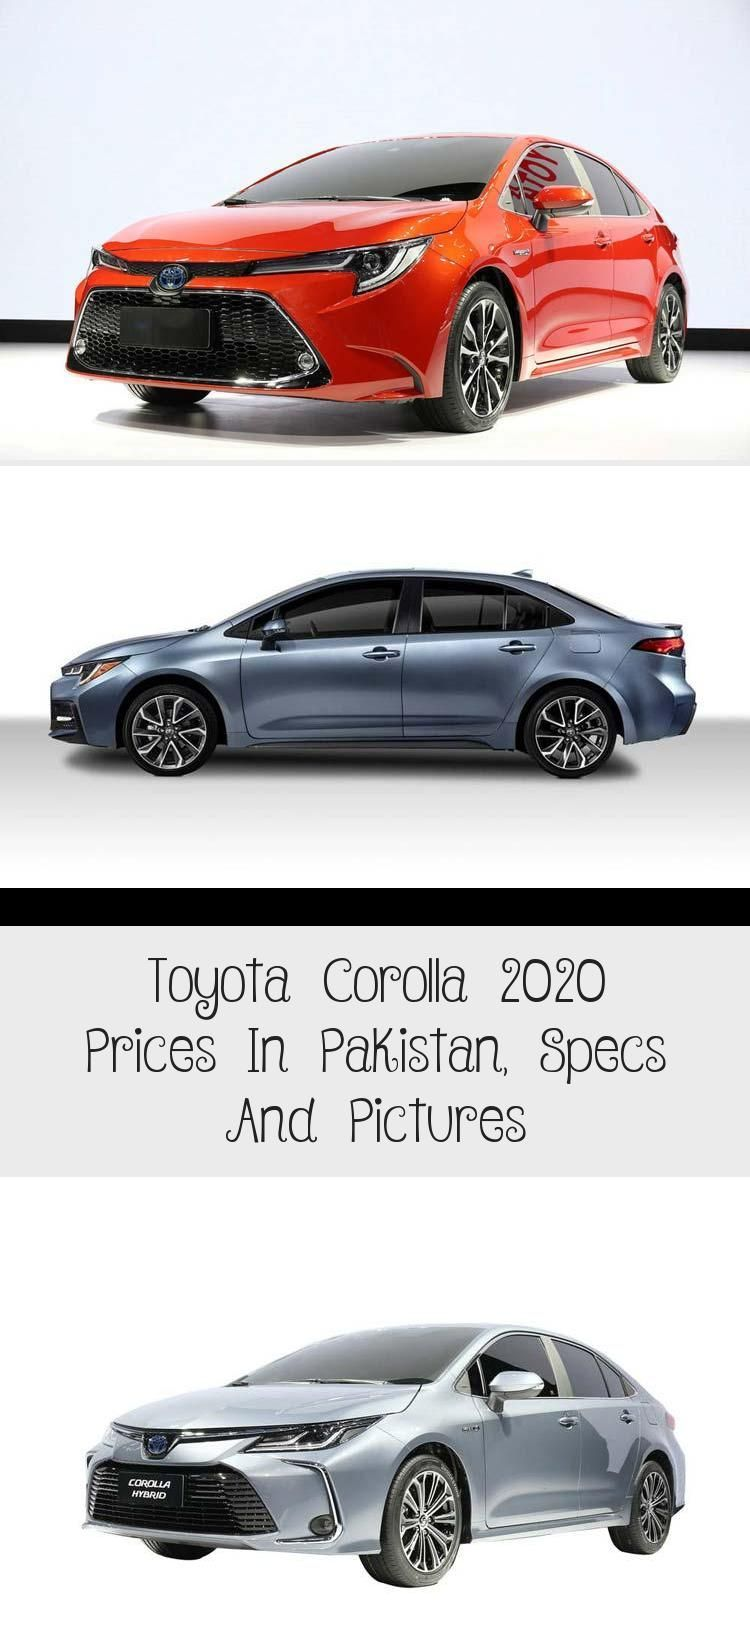 Toyota Corolla 2020 Prices In Pakistan Specs And Pictures In 2020 Toyota Corolla Toyota Corolla